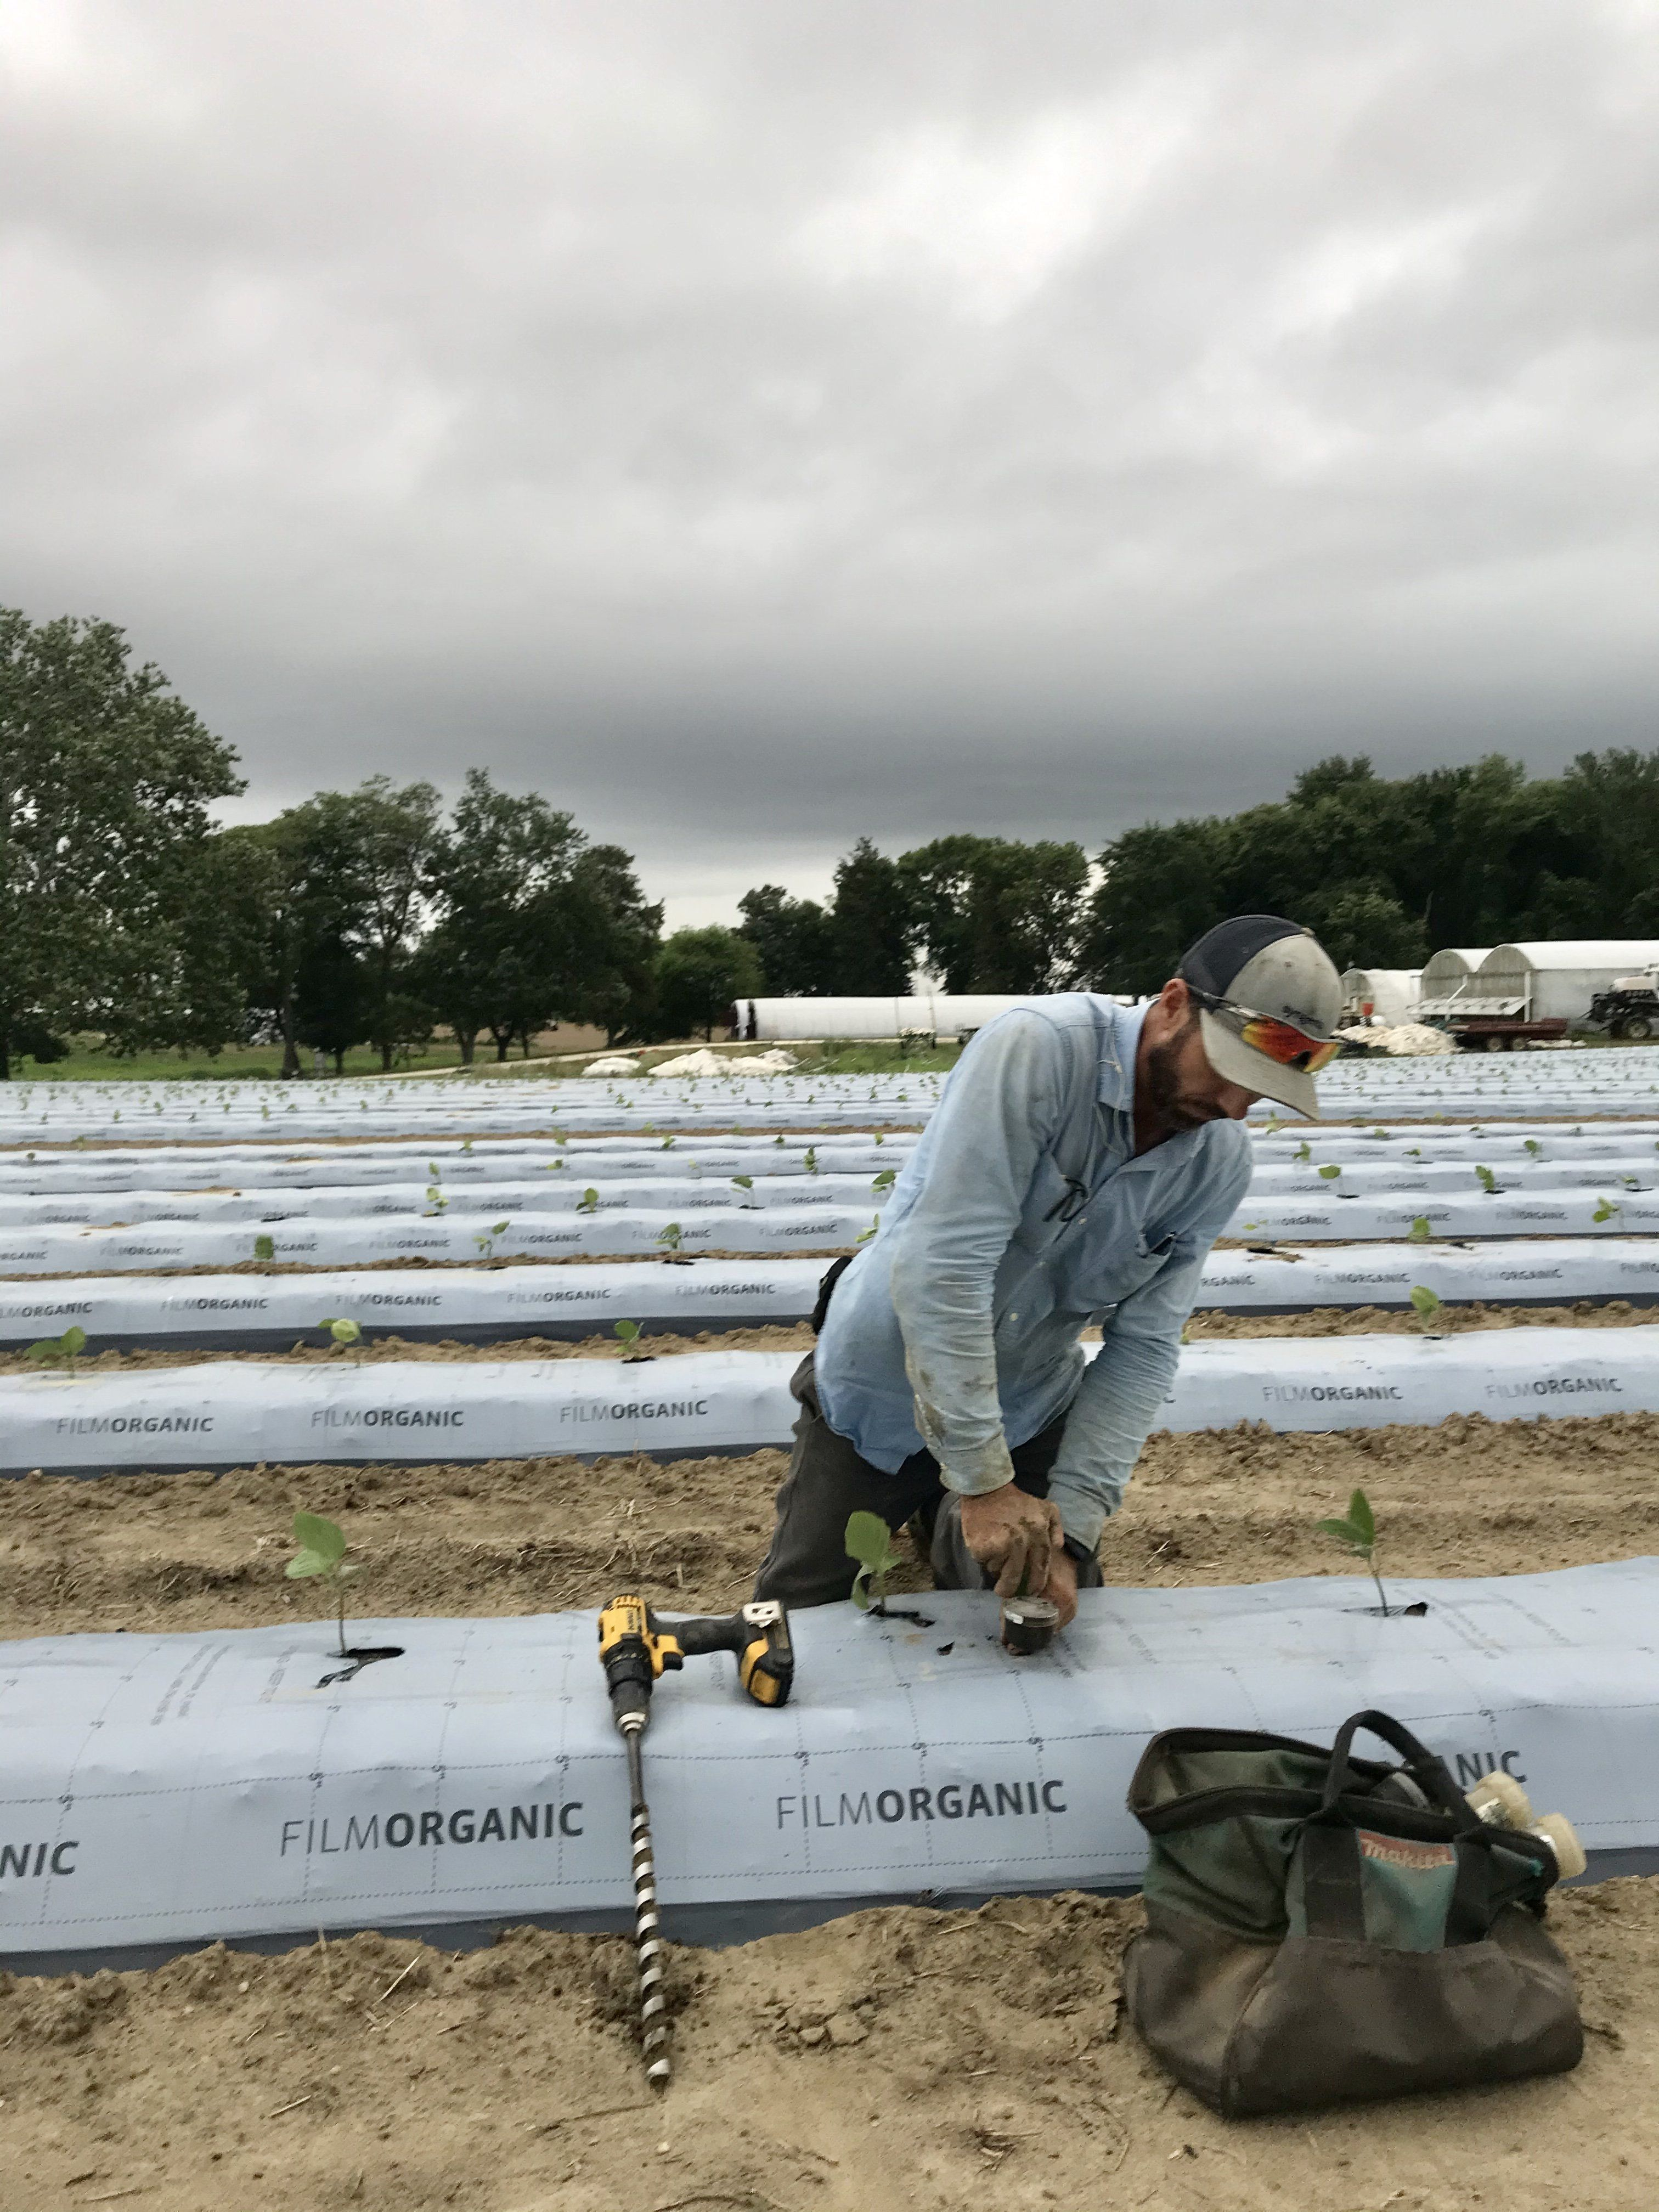 Previous Happening: Farm Happenings for July 13, 2020